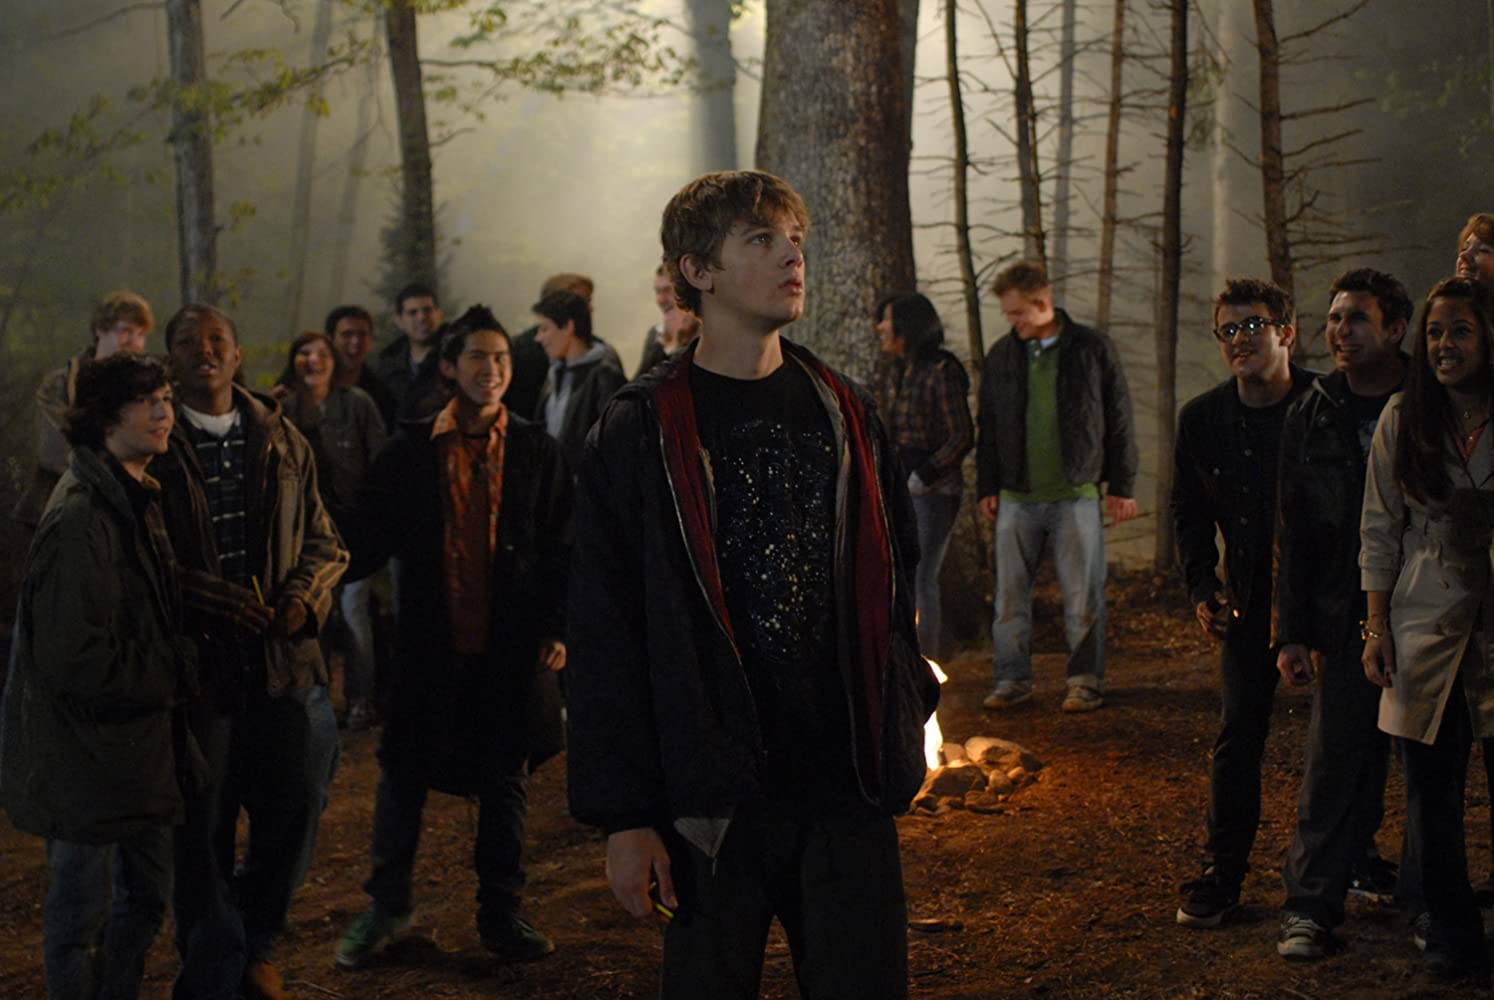 Denzel Whitaker, Jeremy Chu, Max Thieriot, and John Magaro in My Soul to Take (2010)